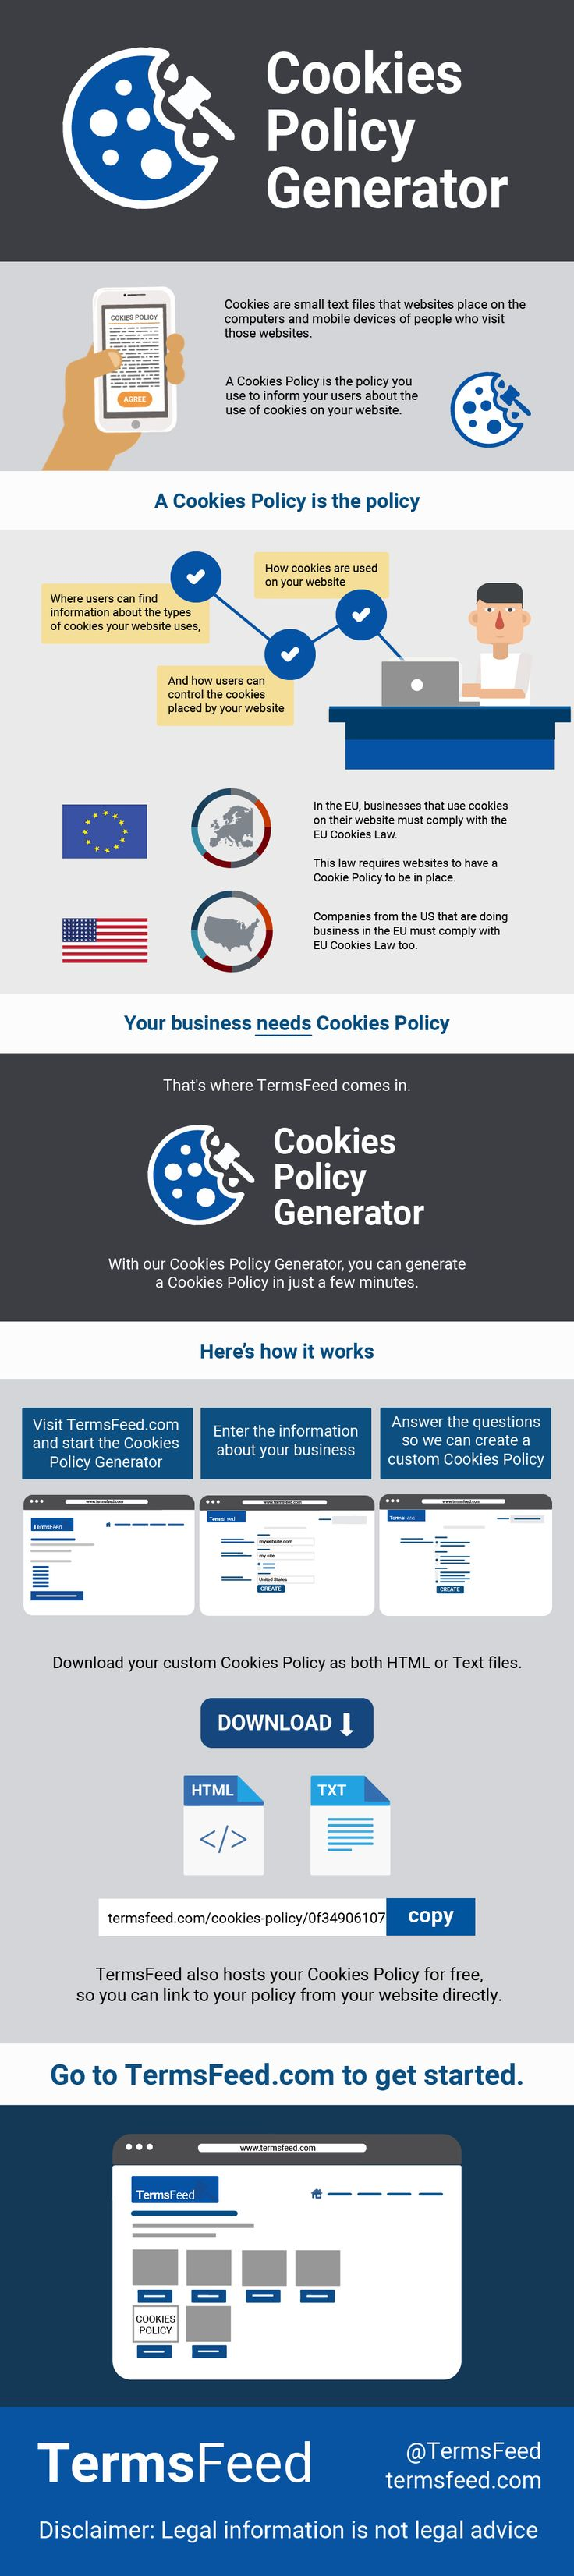 TermsFeed Cookies Policy Generator creates a custom and professional Cookies Policy for your website.